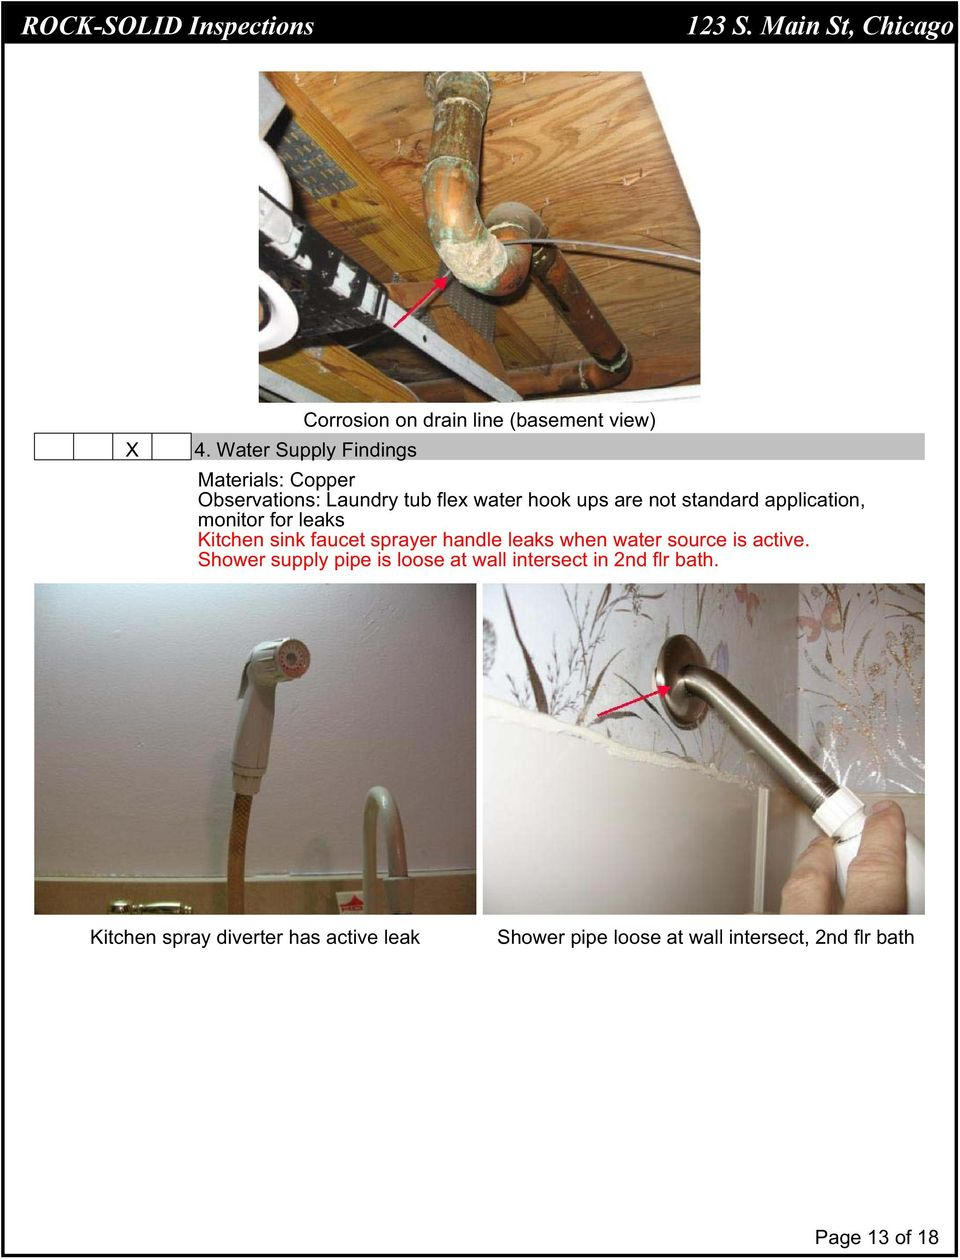 application, monitor for leaks Kitchen sink faucet sprayer handle leaks when water source is active.